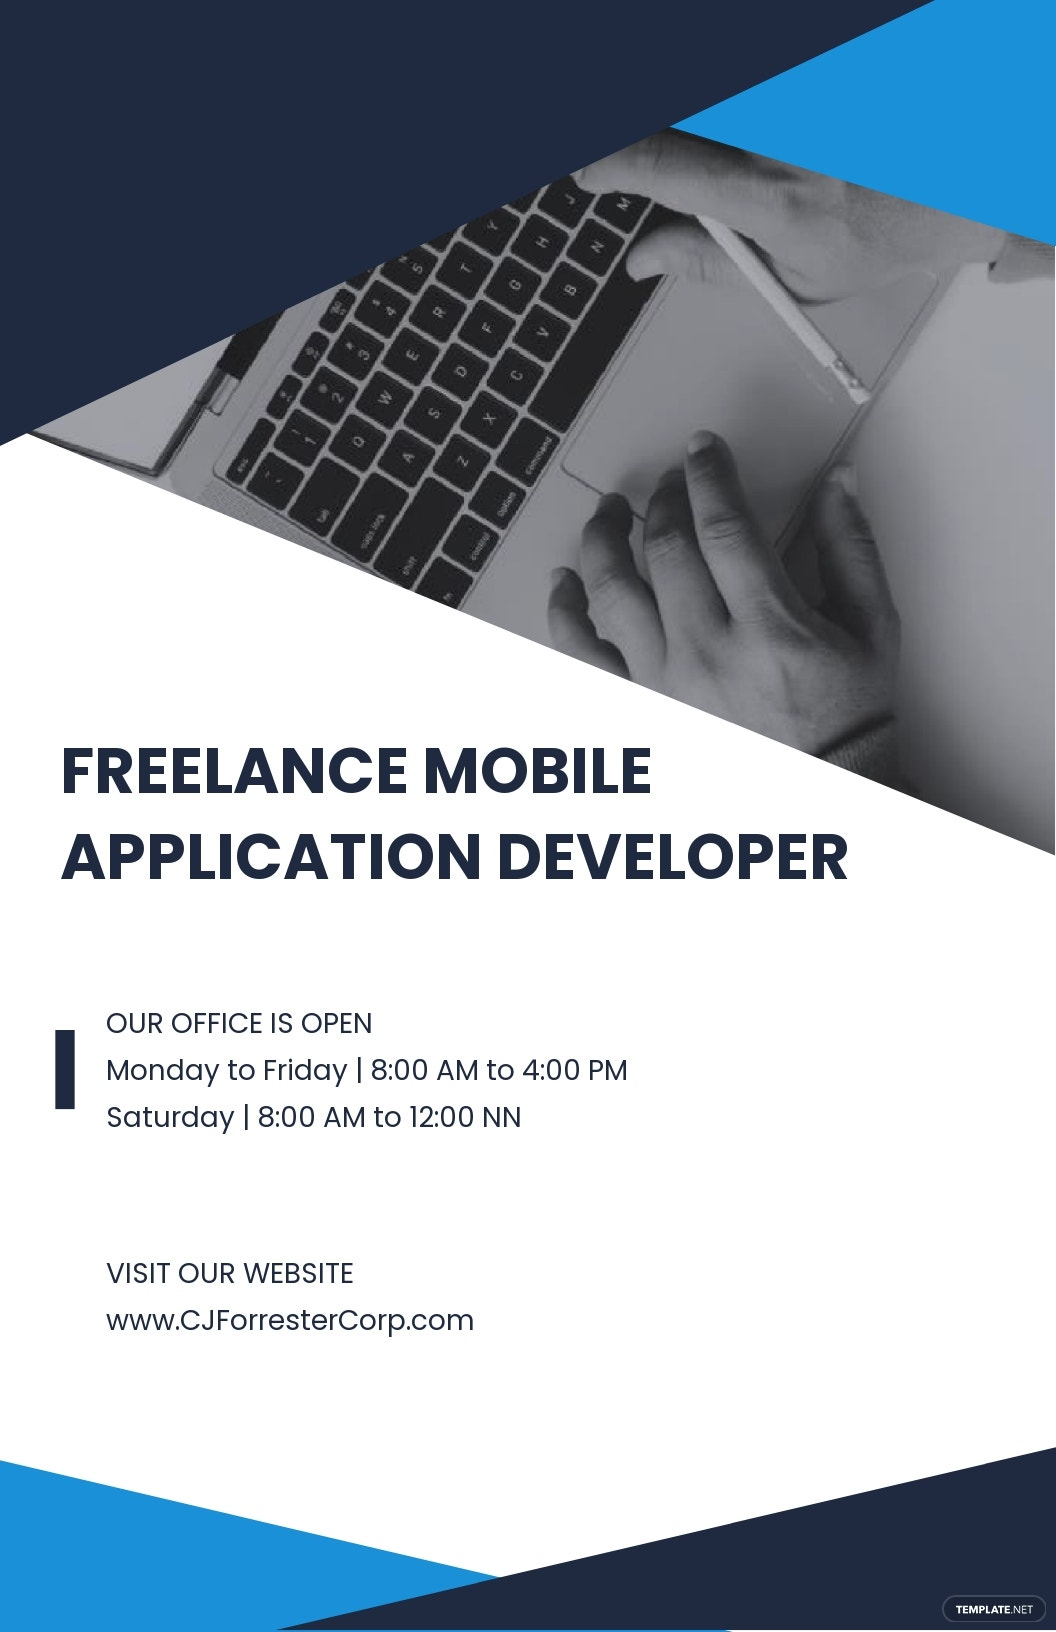 Freelance Poster Template